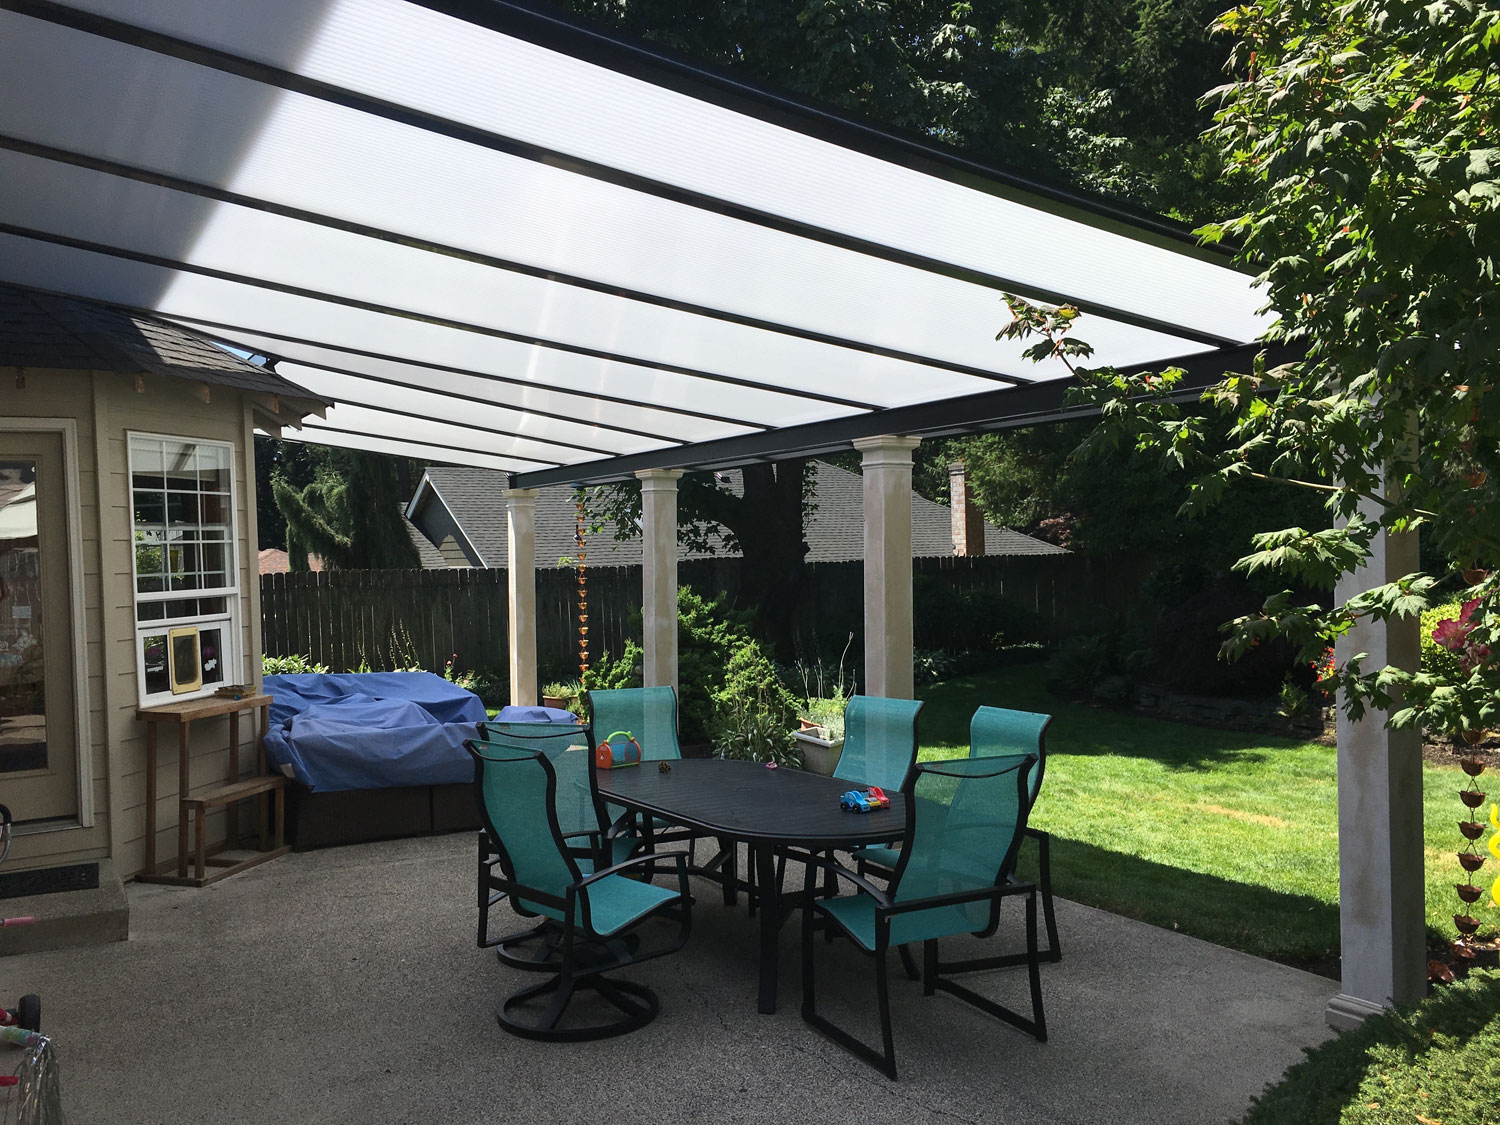 High Quality Custom Patio Covers Portland Or Vancouver Wa for size 1500 X 1125